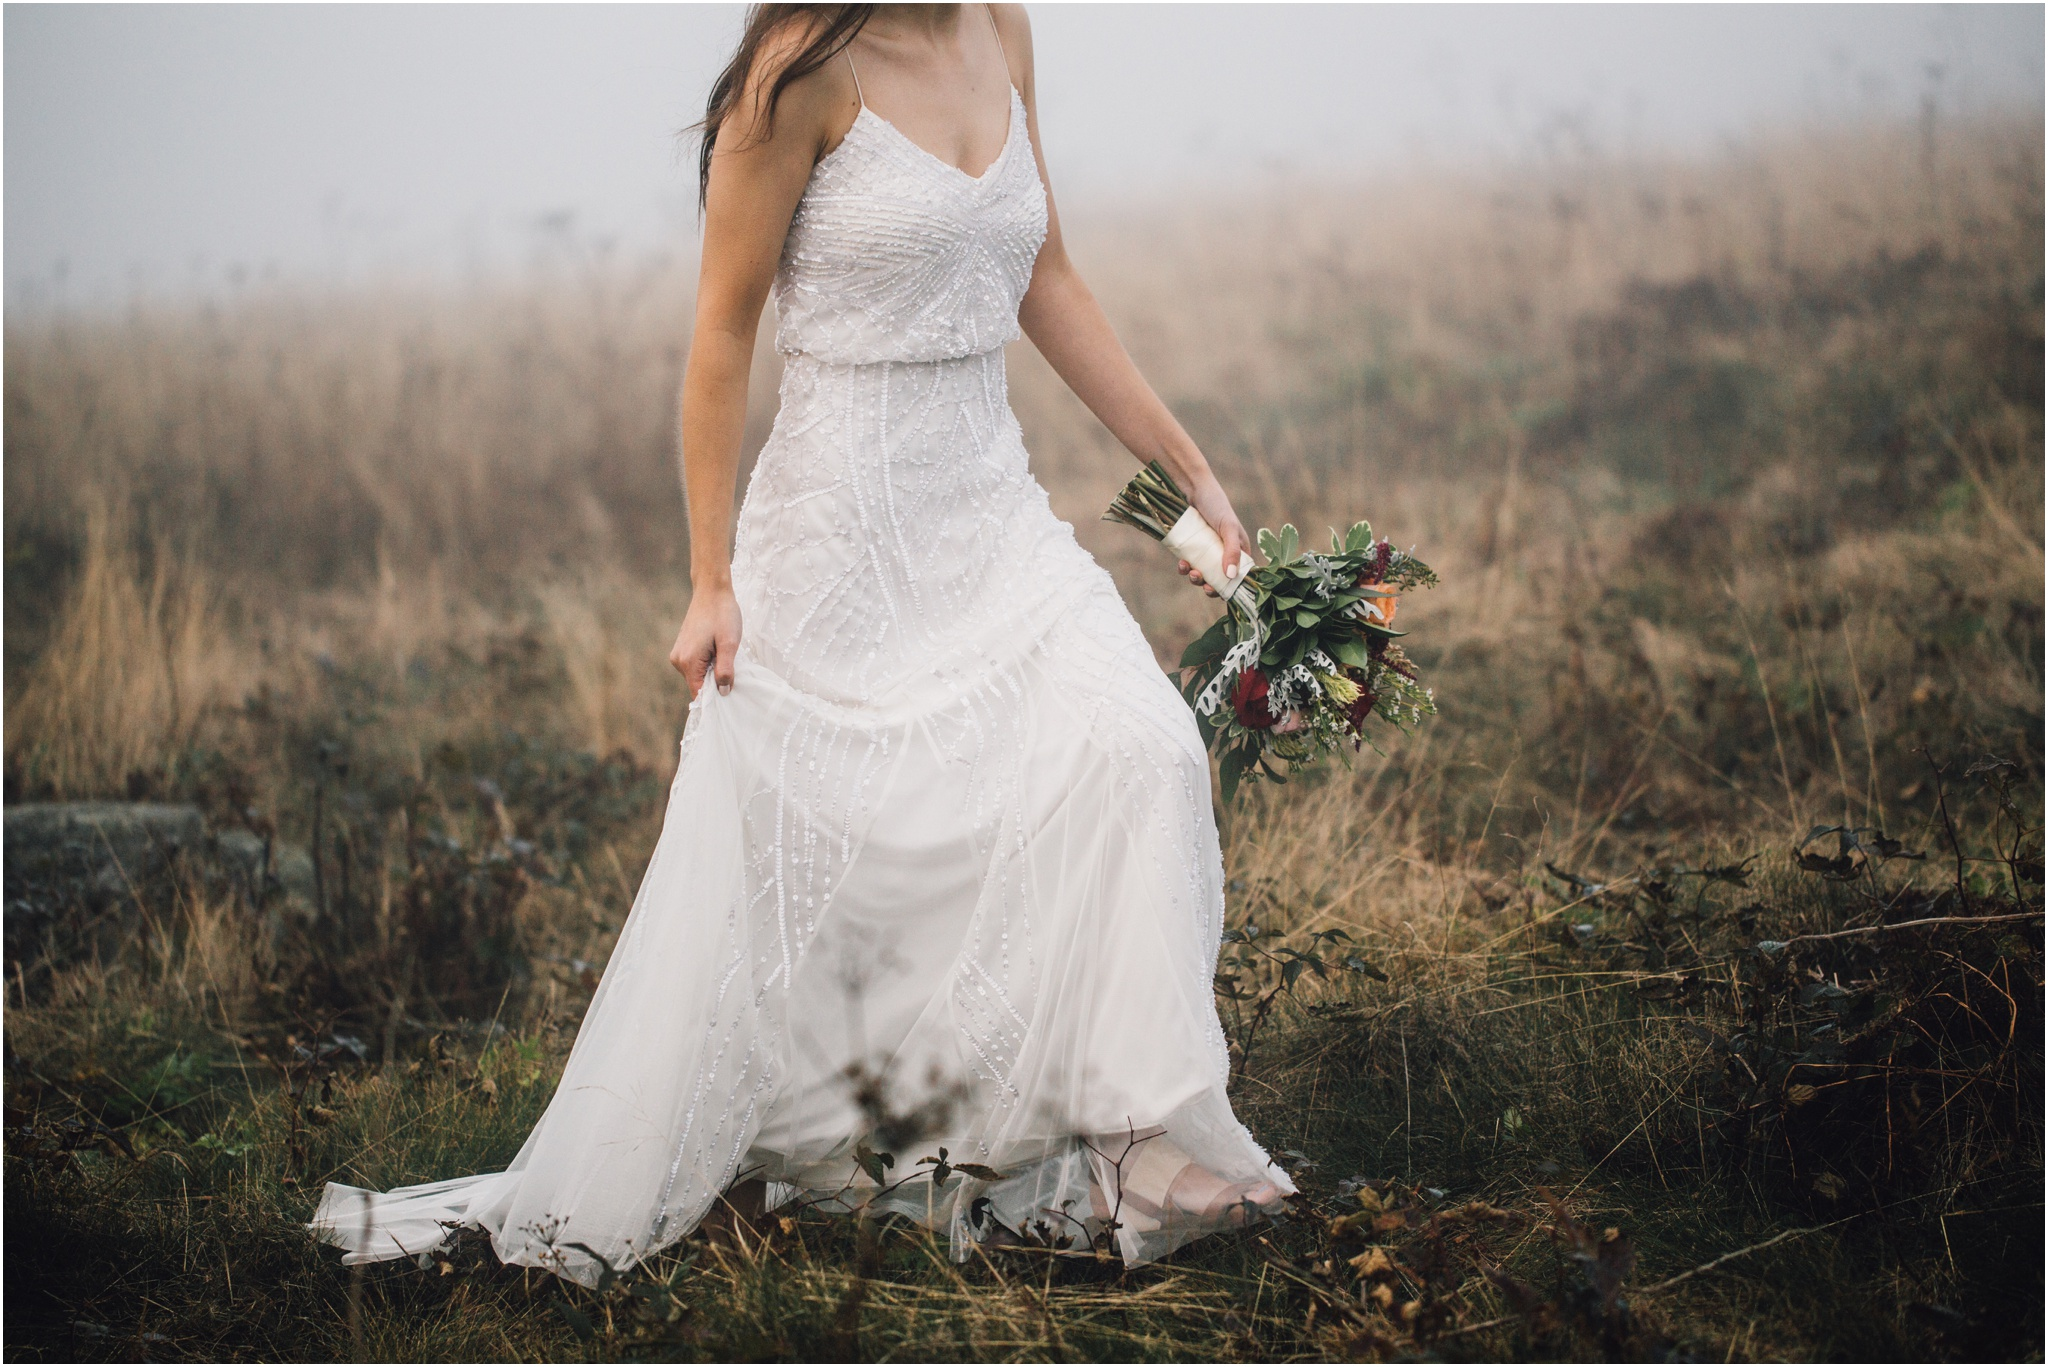 Muddy Wedding Dresses: A Guide To Dress Cleaning And